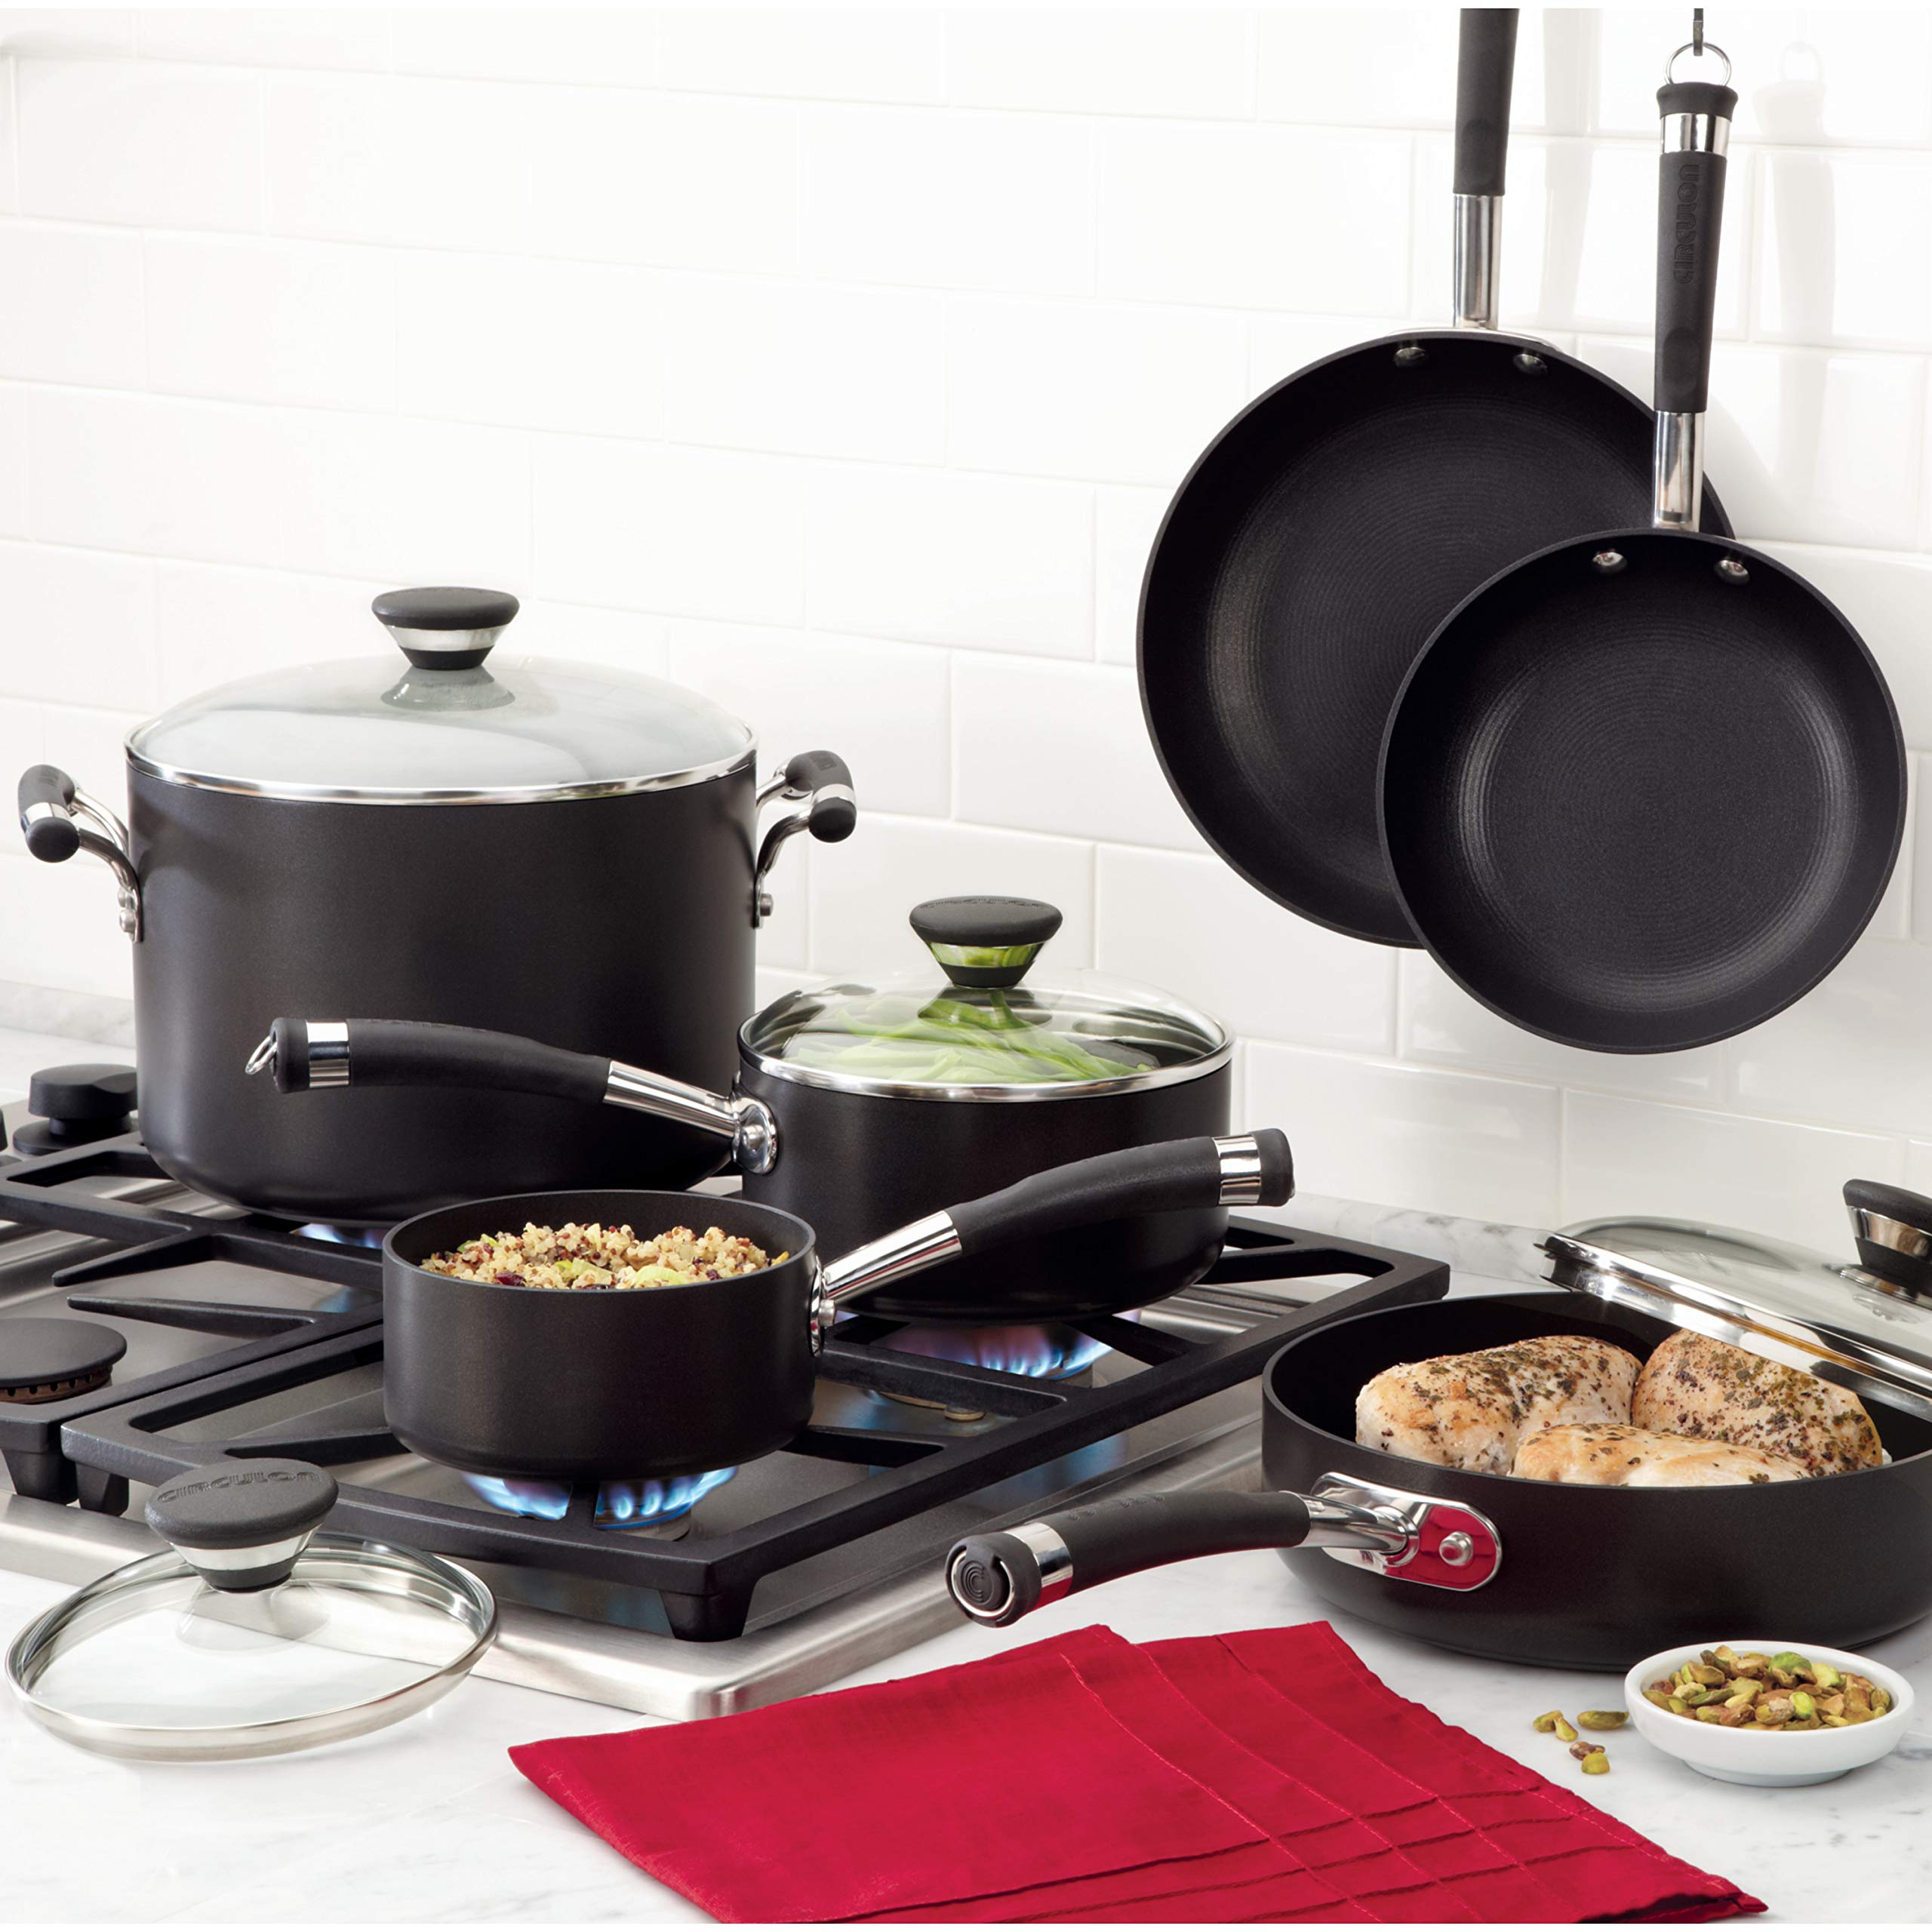 Circulon Acclaim Hard-Anodized Nonstick 4.5-Quart Covered Casserole by Circulon (Image #4)